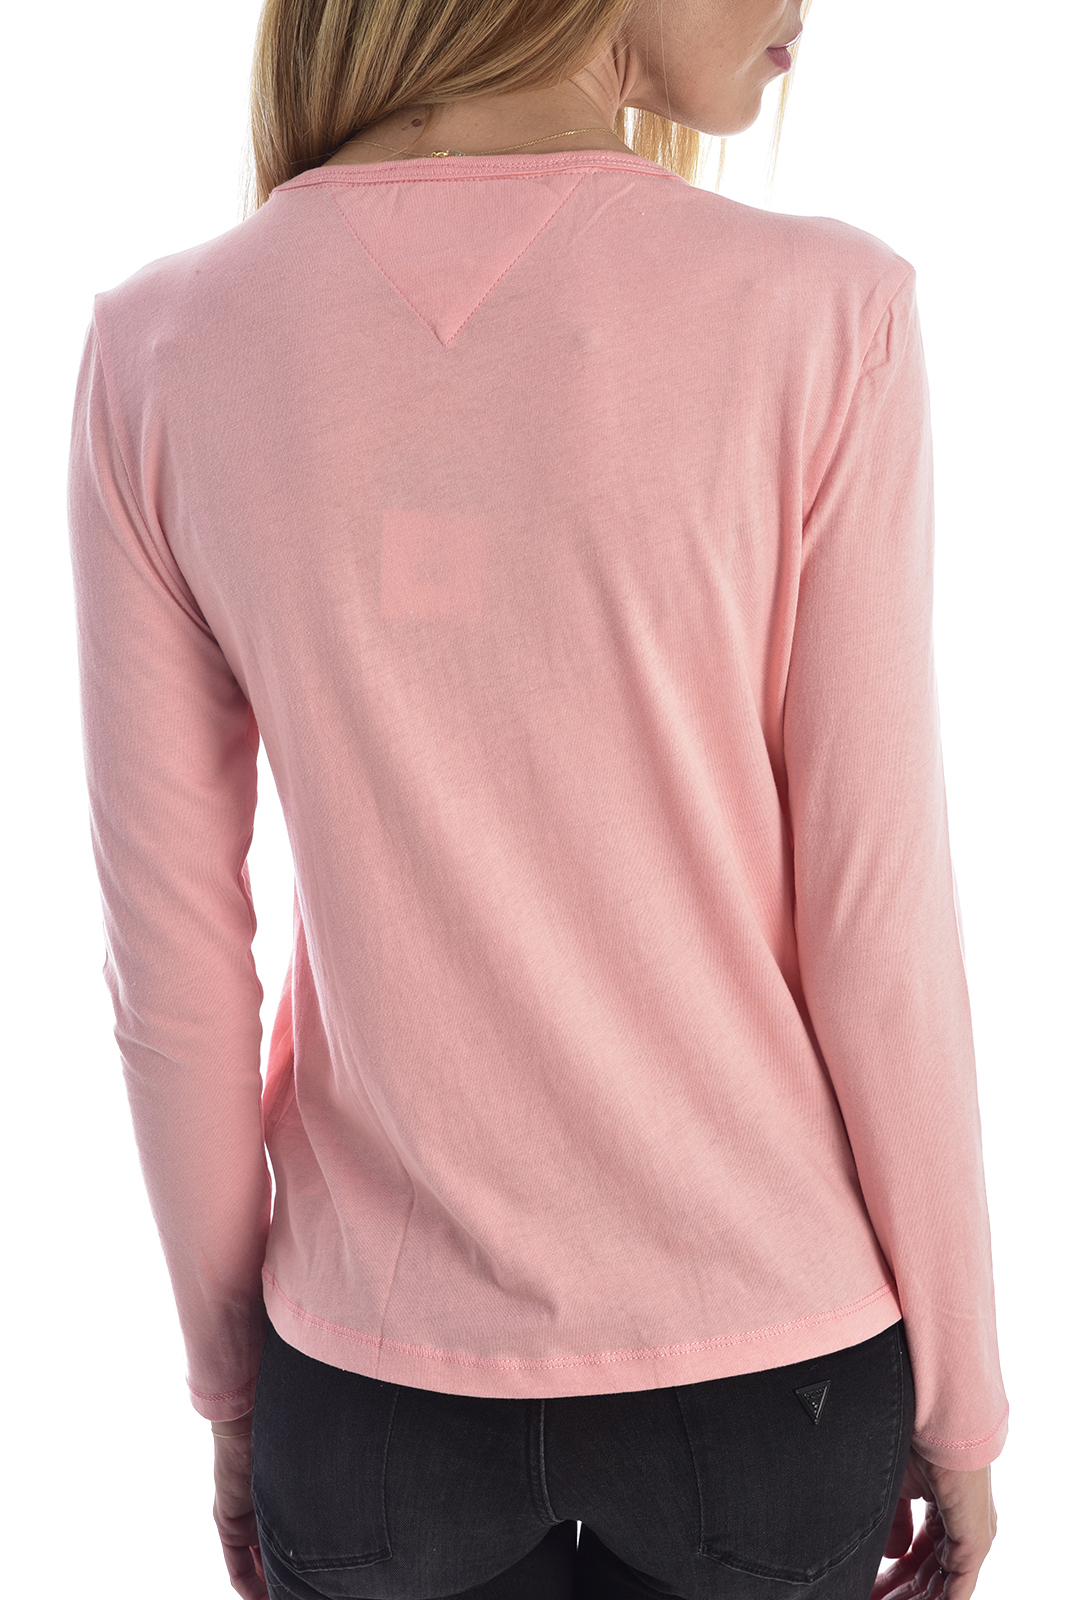 Tee shirt manches longues  Tommy hilfiger DW0DW06900 TE6 pink icing